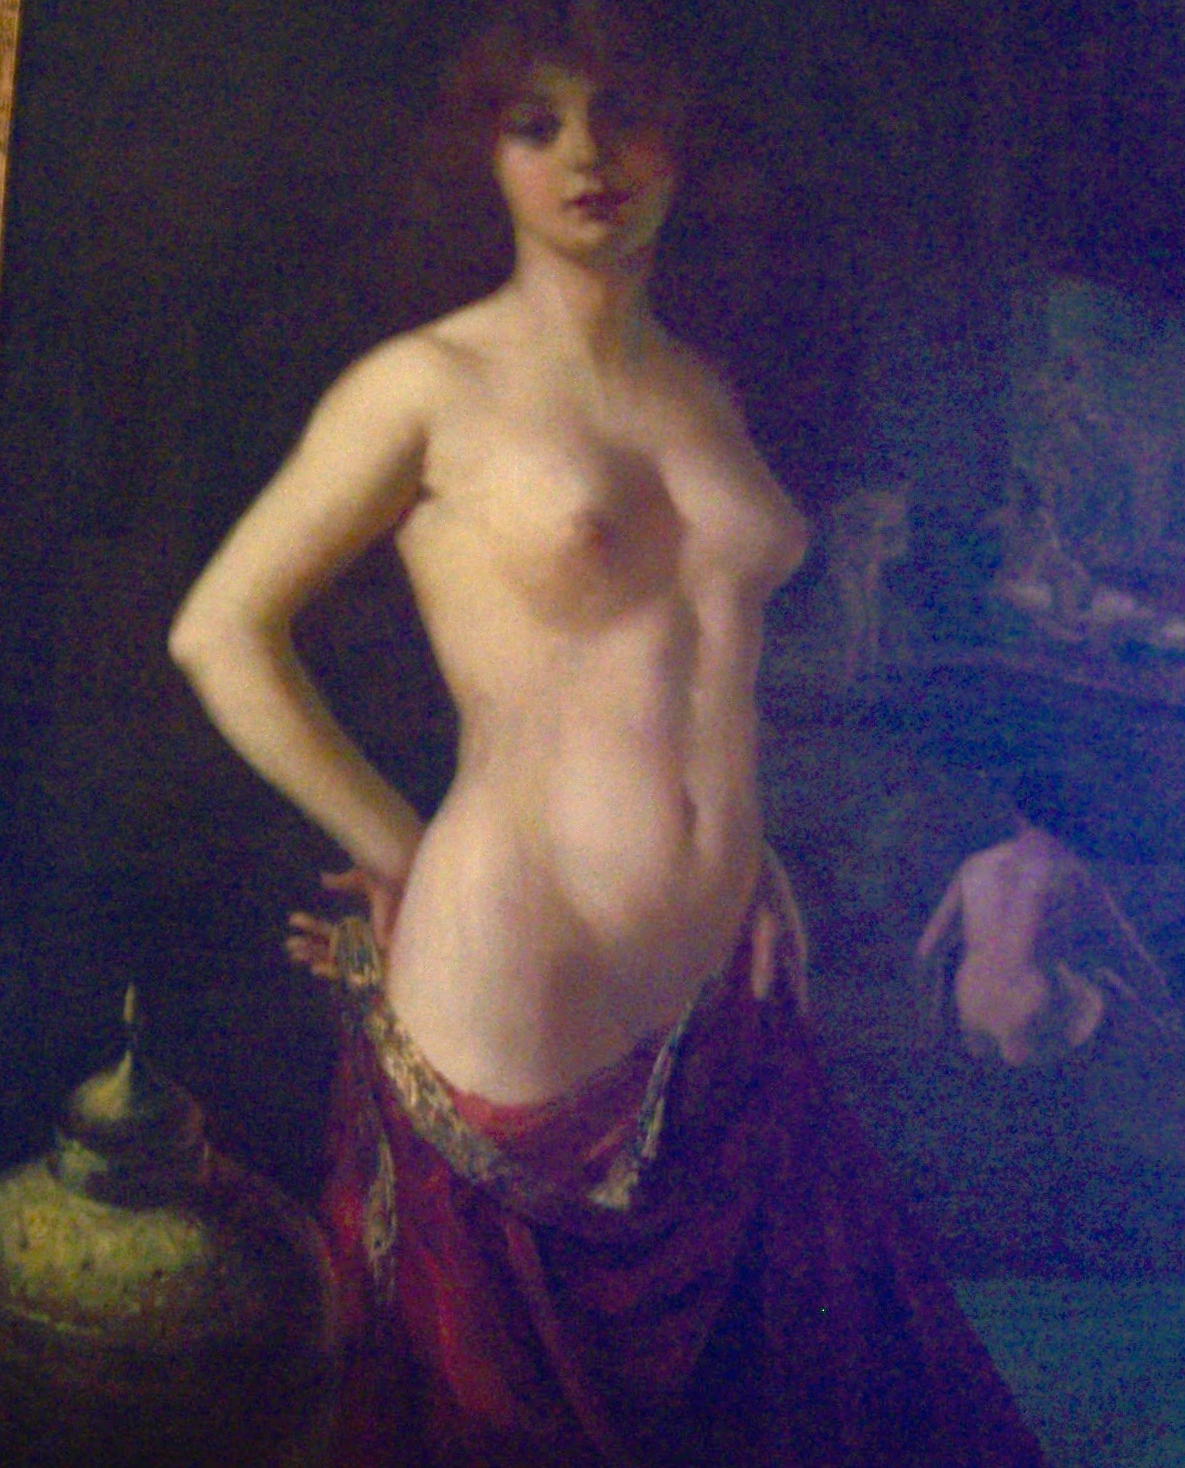 Harem Dancer painting with decidedly 20th century features